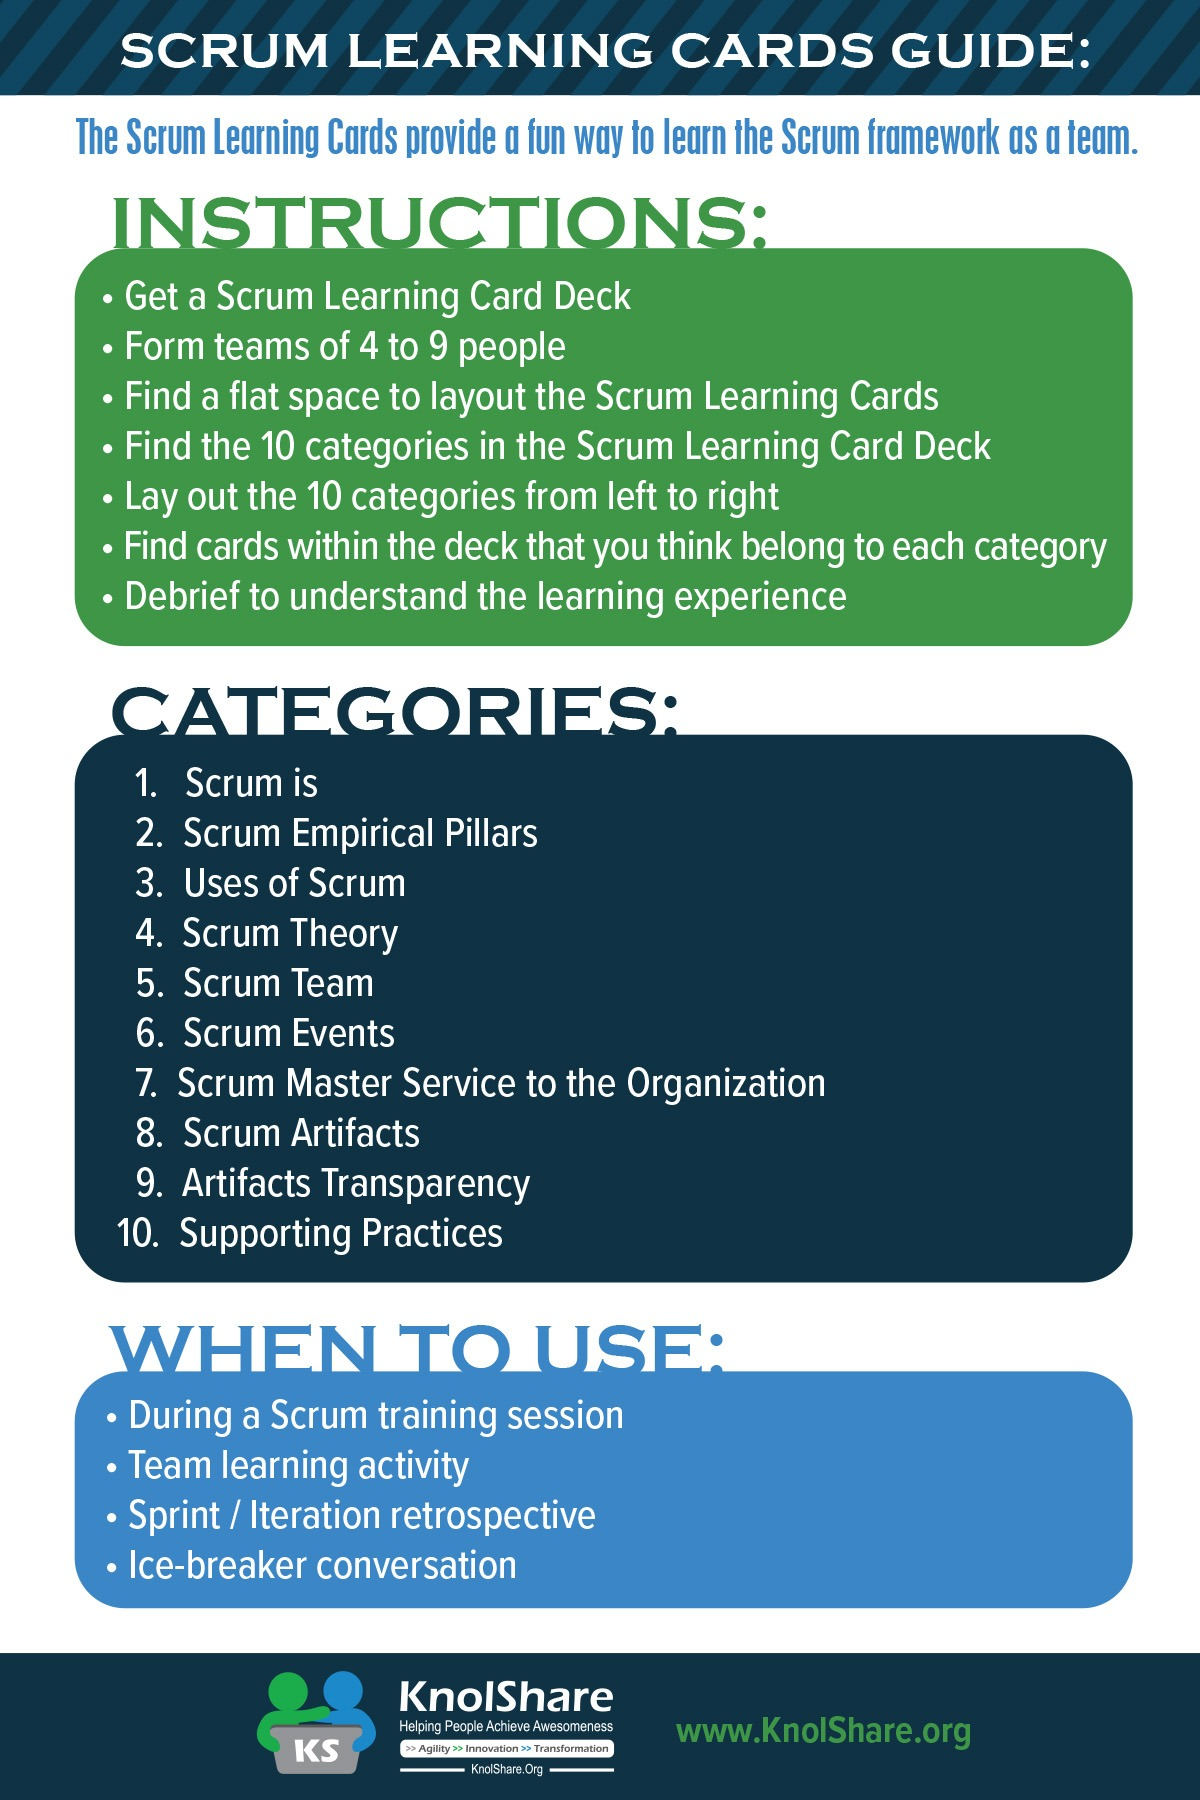 ScrumLearningCards-Side1.jpg